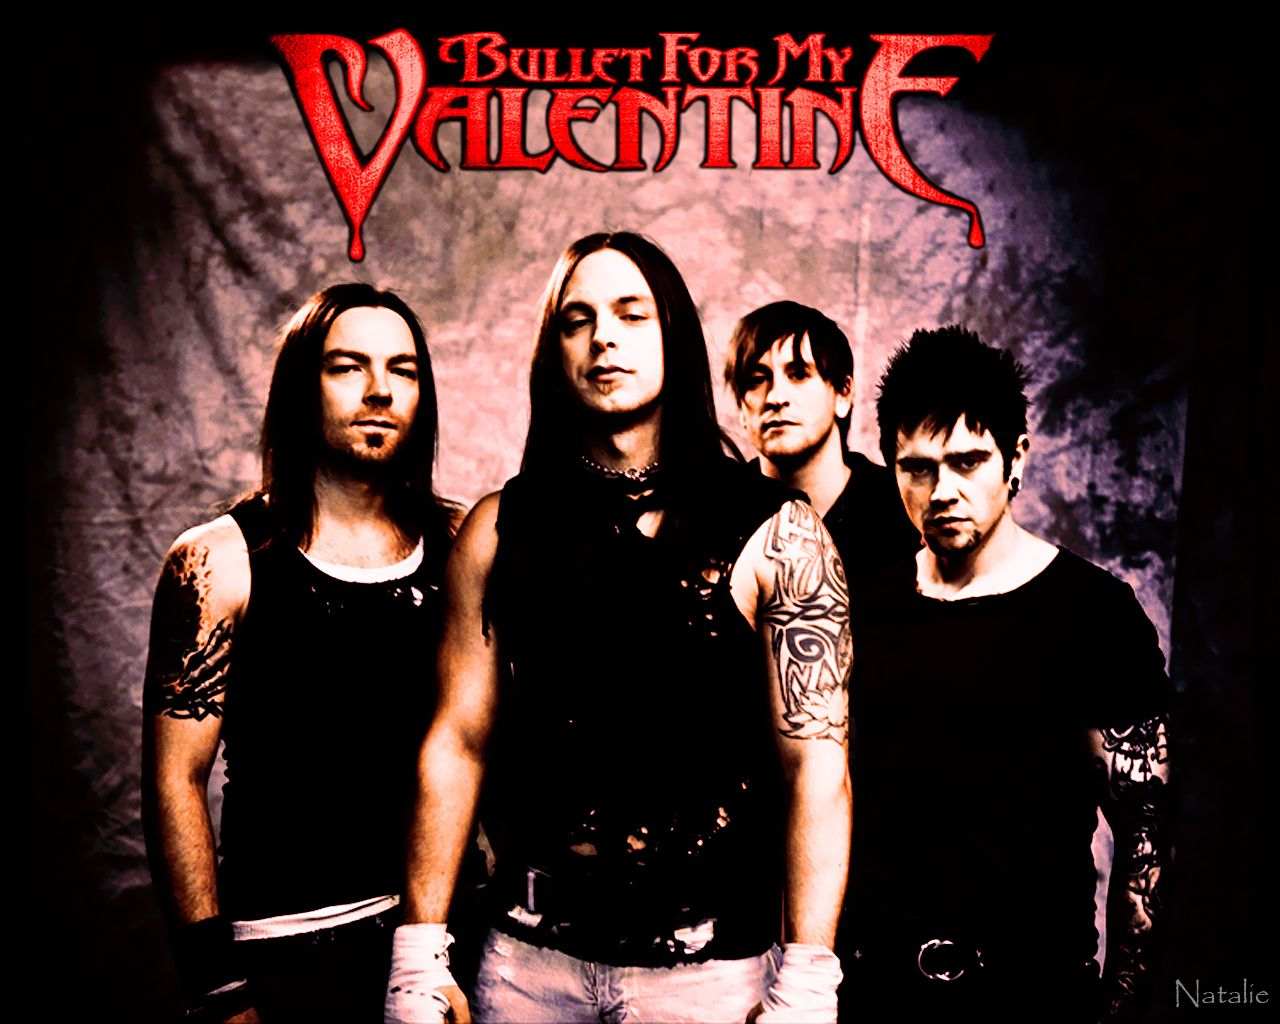 Bullet For My Valentine Wallpaper Desktop #h987178 | Music HD Wallpaper .